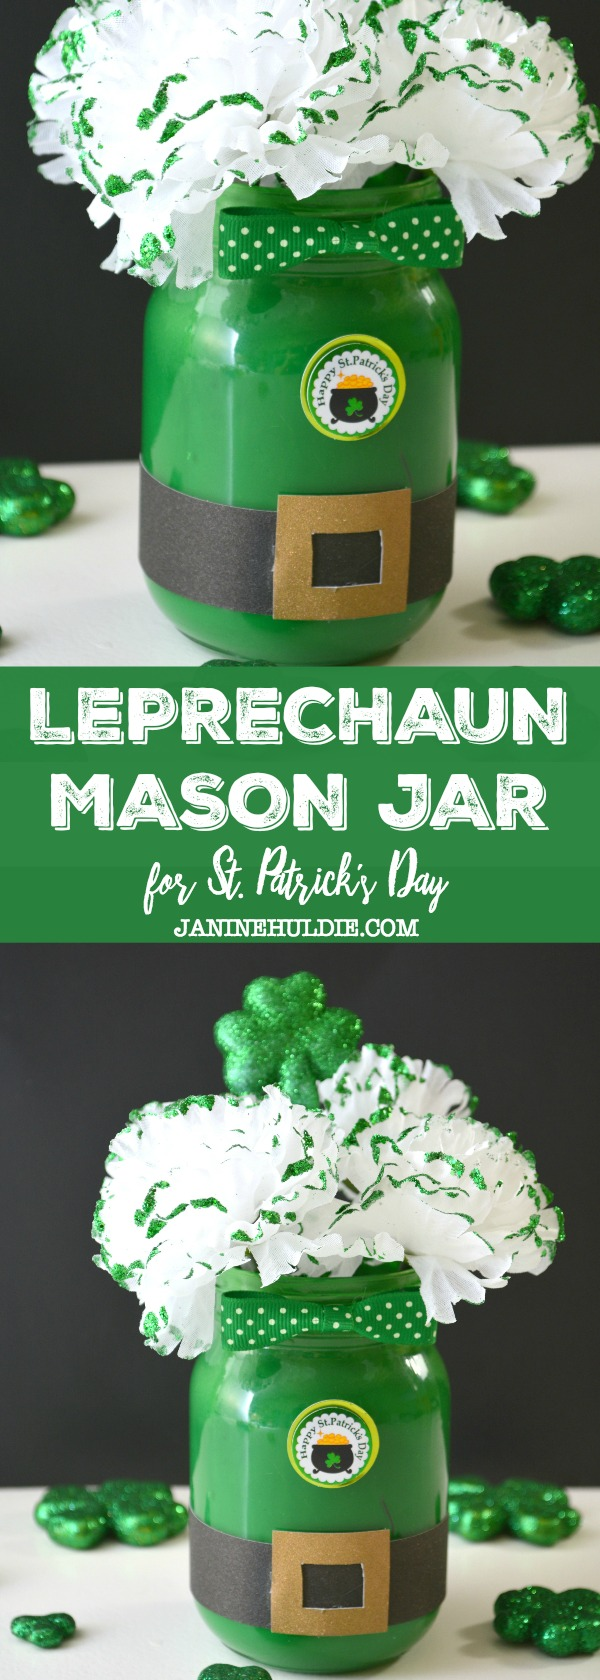 Leprechaun Mason Jar for St. Patrick's Day